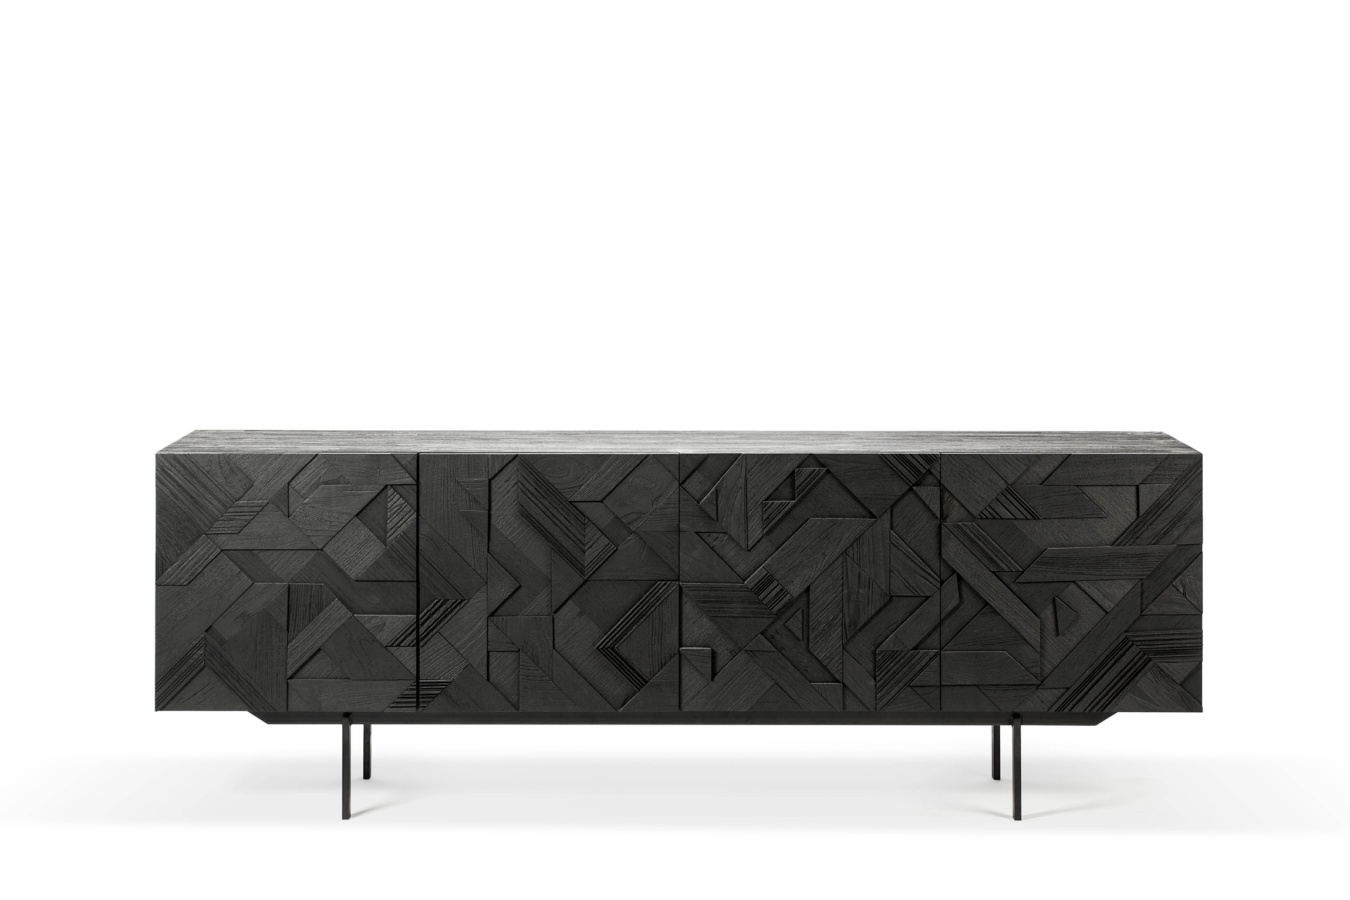 Koop Teak Graphic black sideboard by Ethnicraft